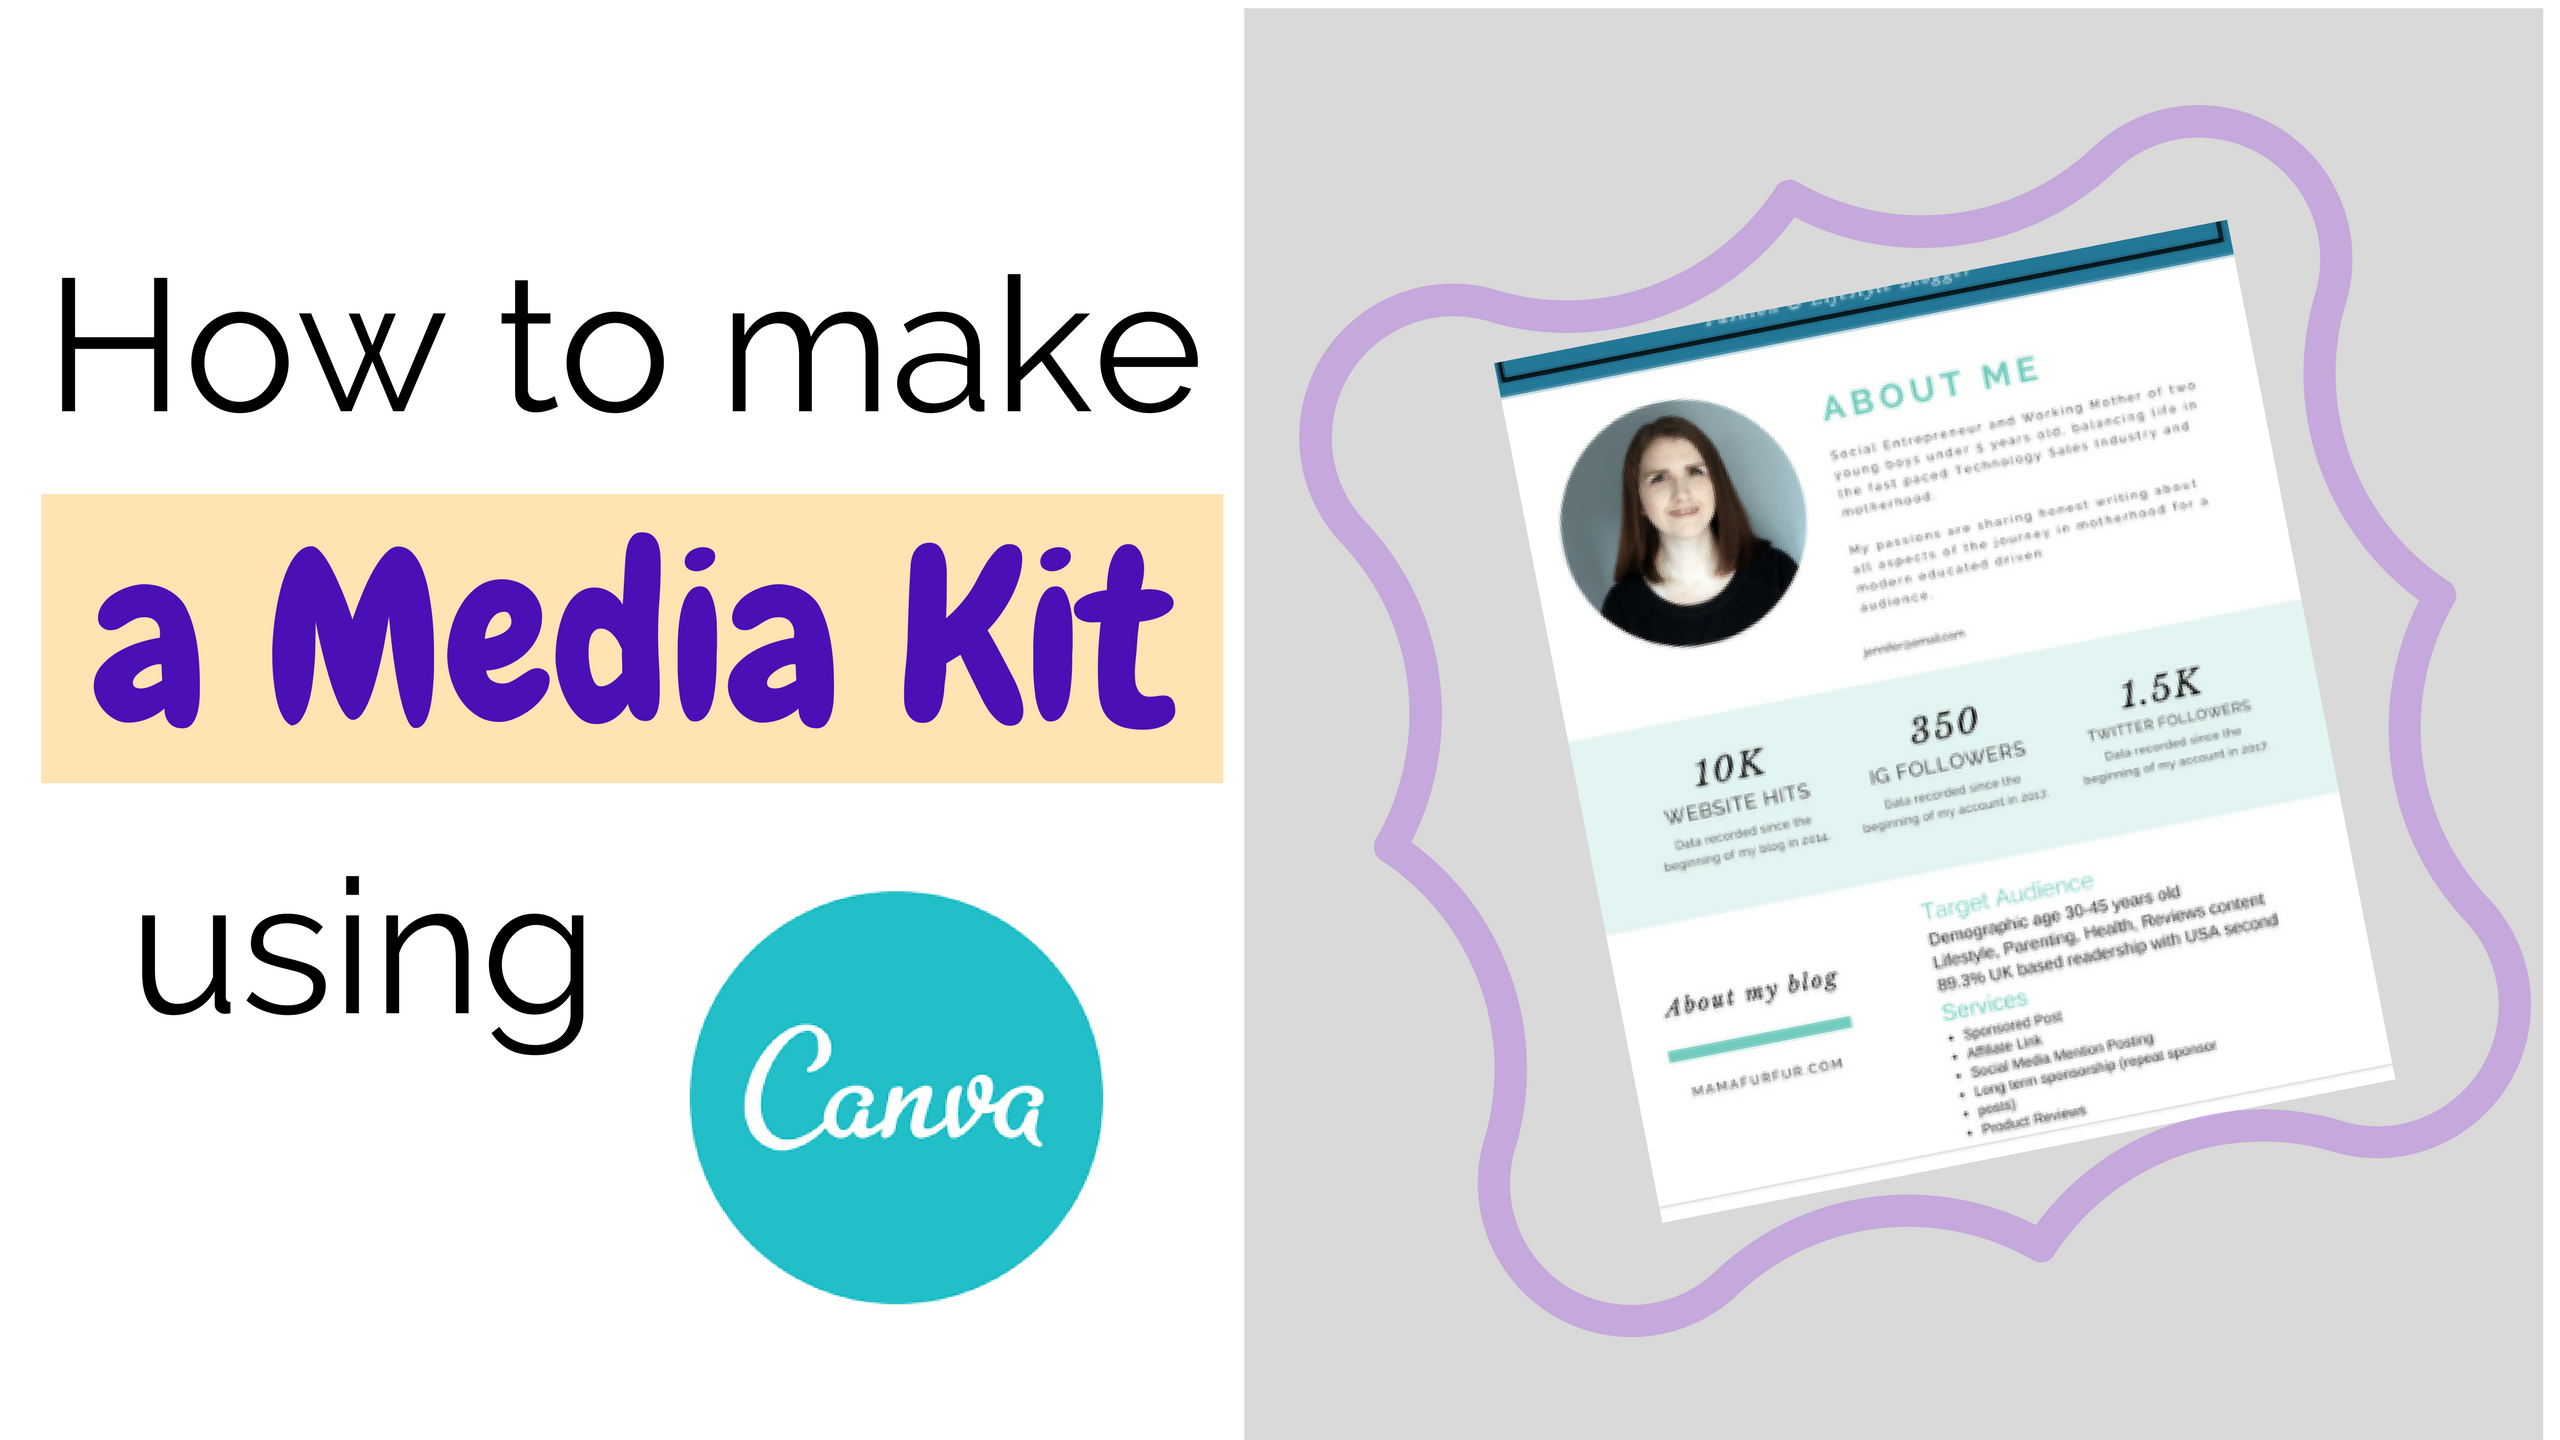 How to make a Media Kit using Canva for Blogs or Website ¦ Create a Media Kit in Canva